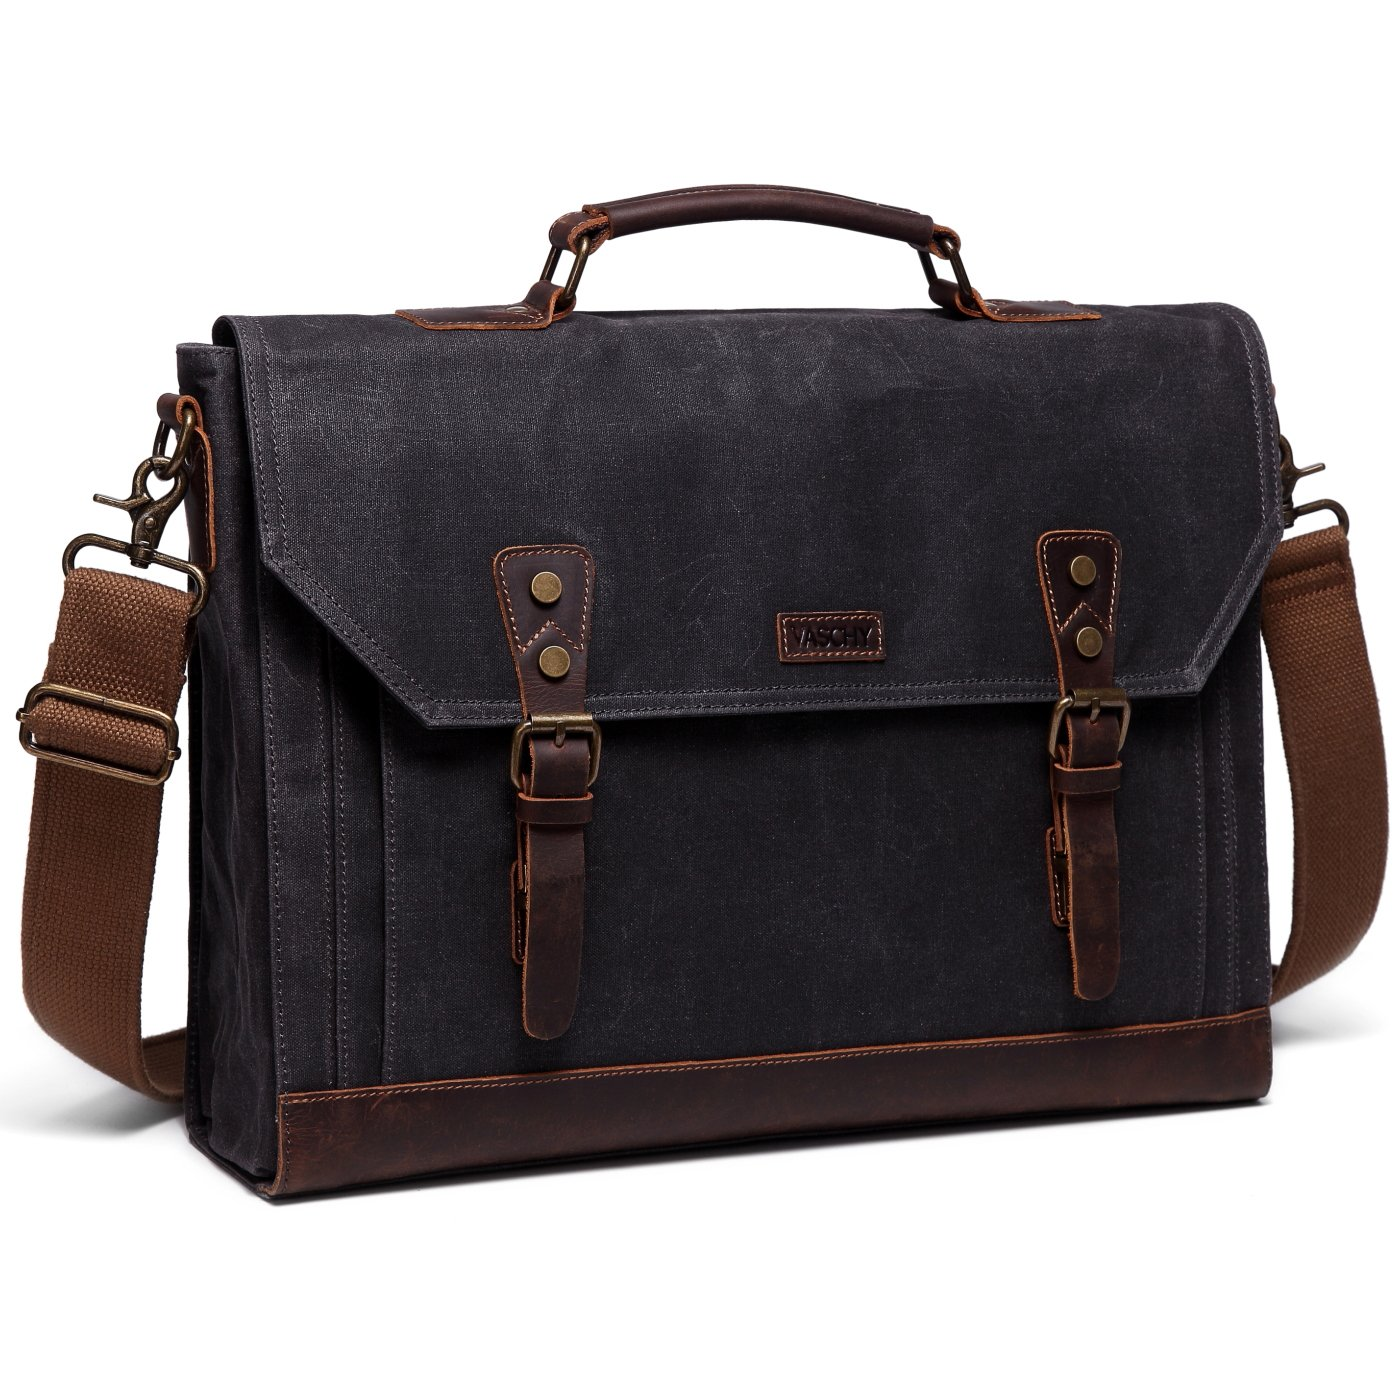 Vaschy makes a great messenger bag for dad's gift this year